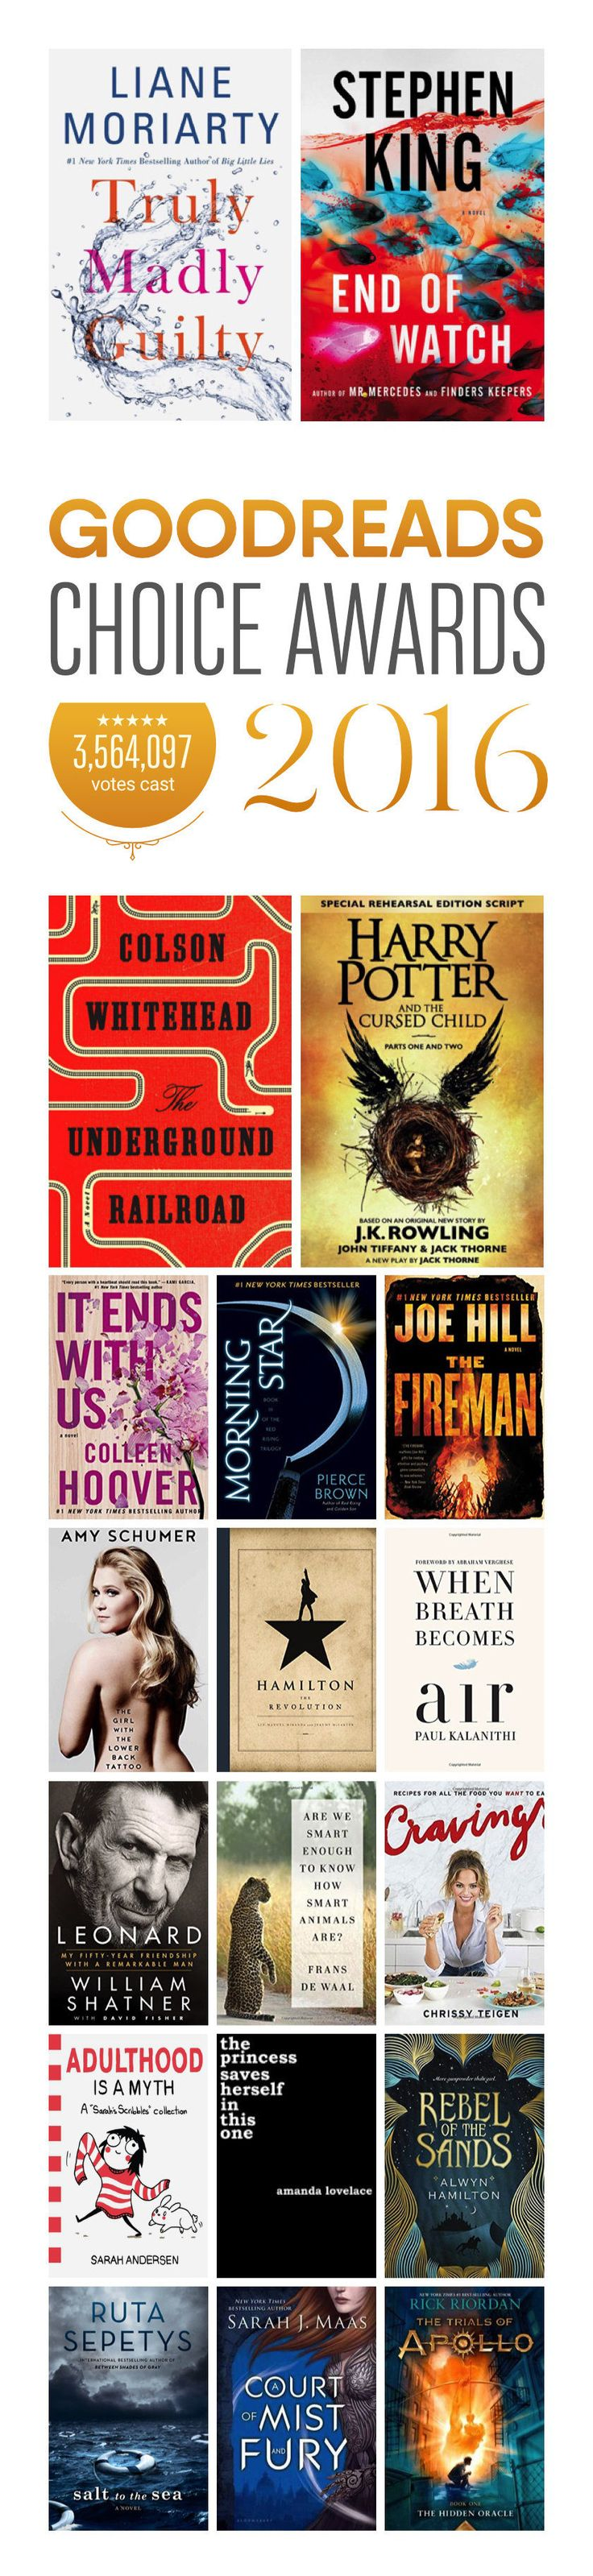 Here are the winners of Goodreads Choice Award9s 2016